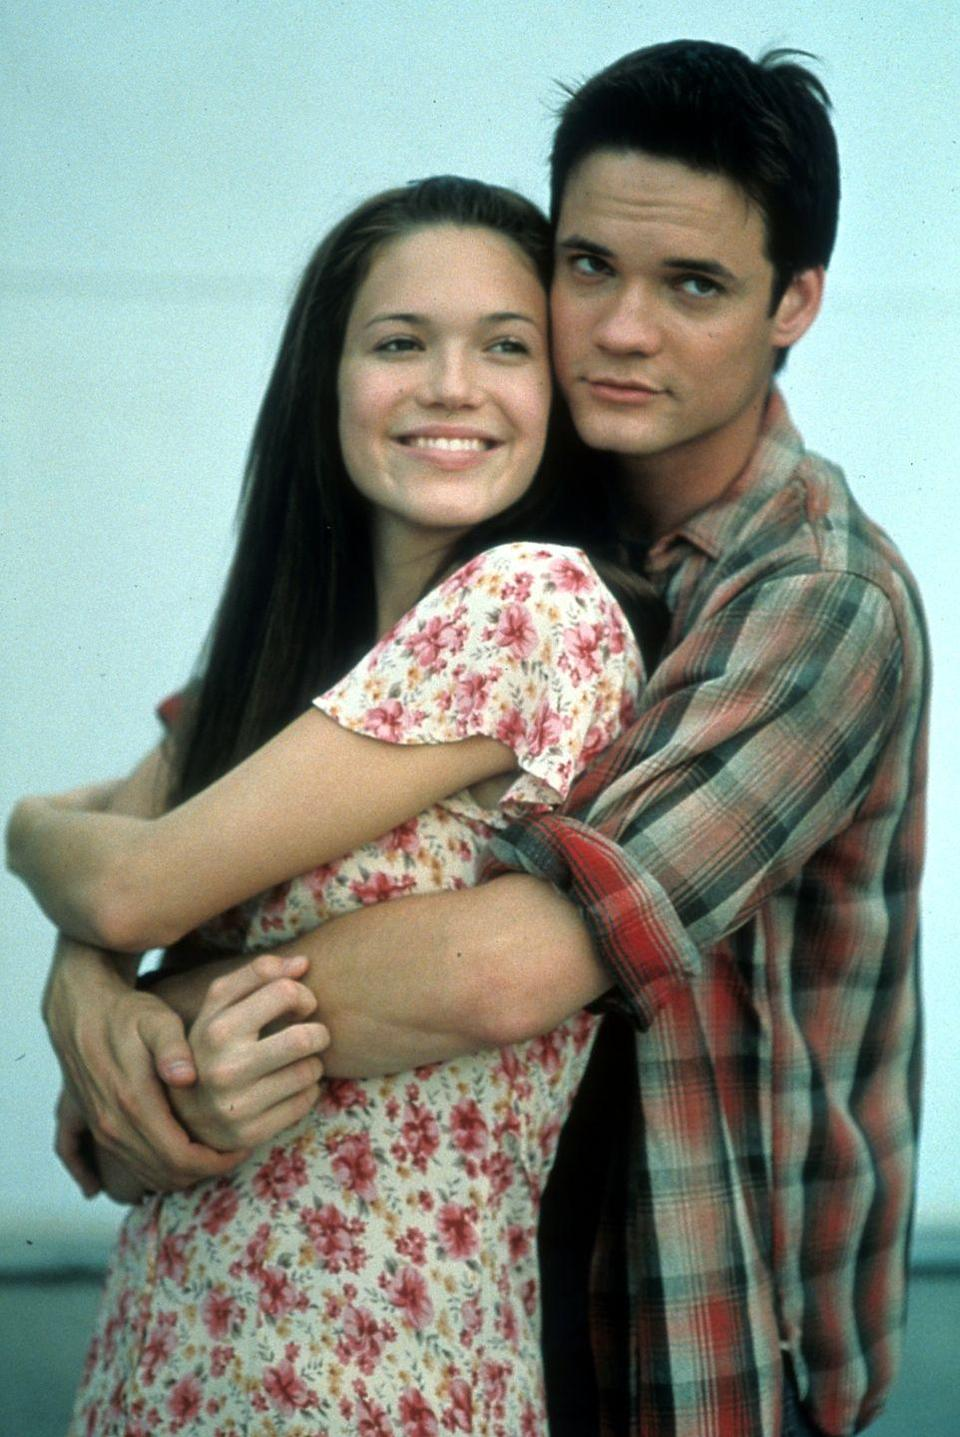 <p>One glance at this photo, and I already have tears in my eyes. Before <em>A </em><em>Walk to Remember</em>, Shane West had a bunch of small TV roles, but his role as the bad-boy-turned-good-guy Landon West captured our hearts. </p>